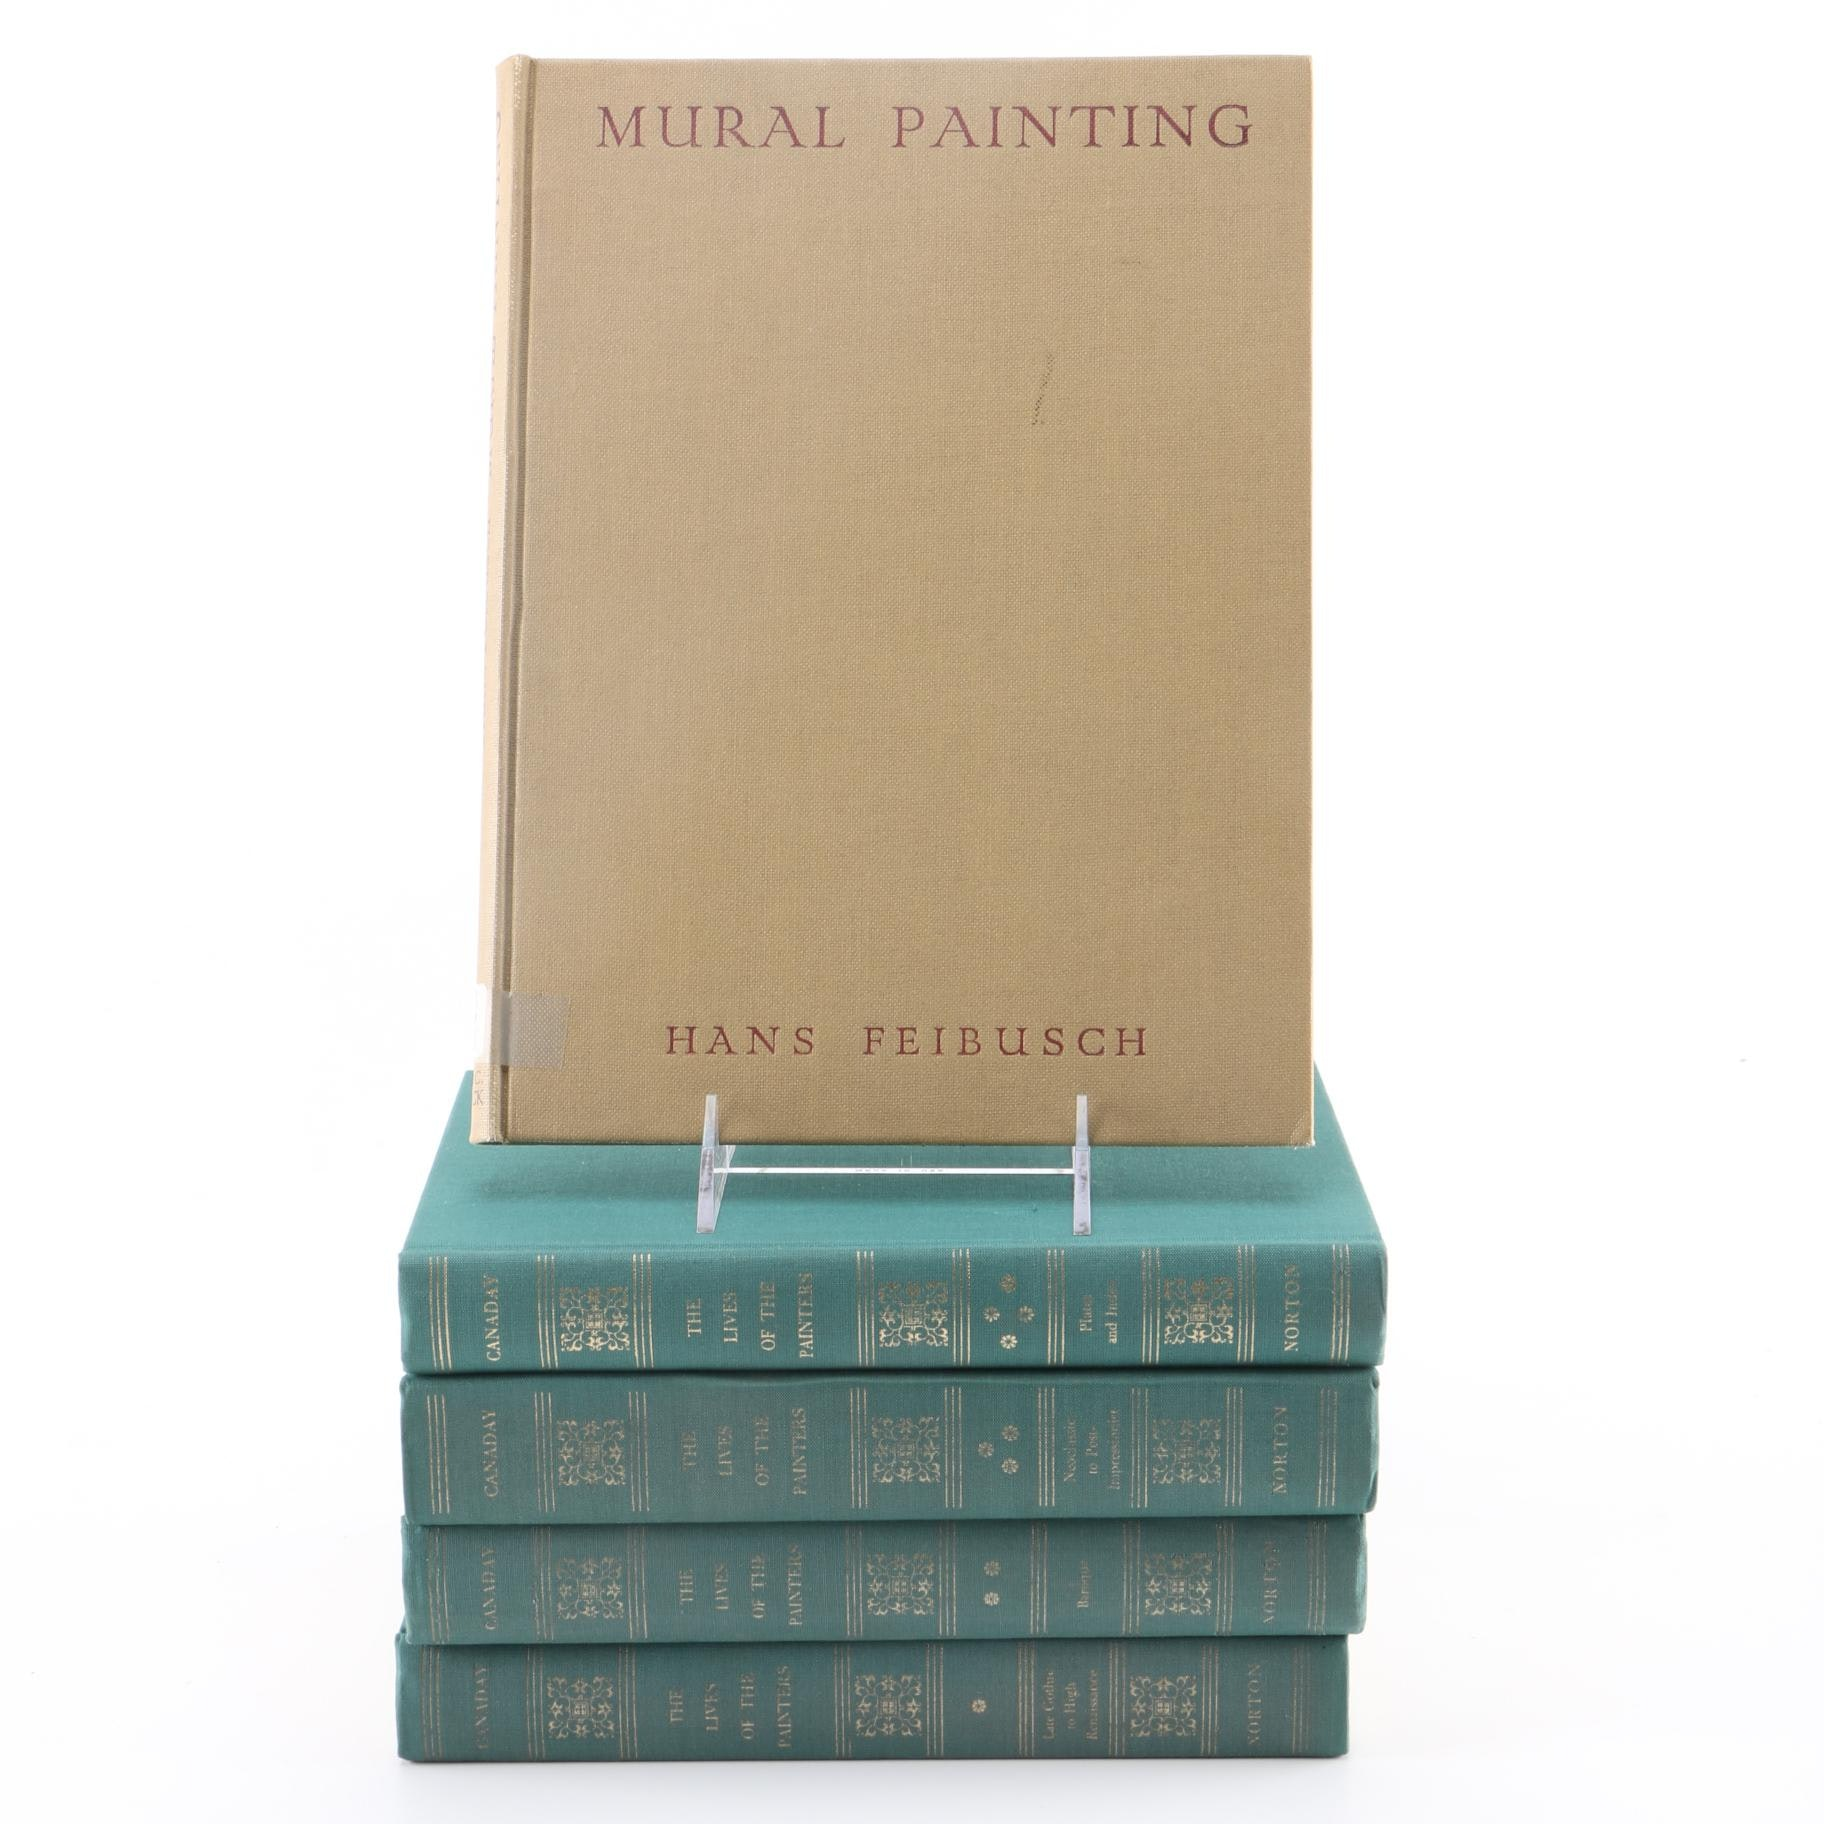 """1969 """"The Lives of Painters"""" by John Canaday in Four Volumes"""